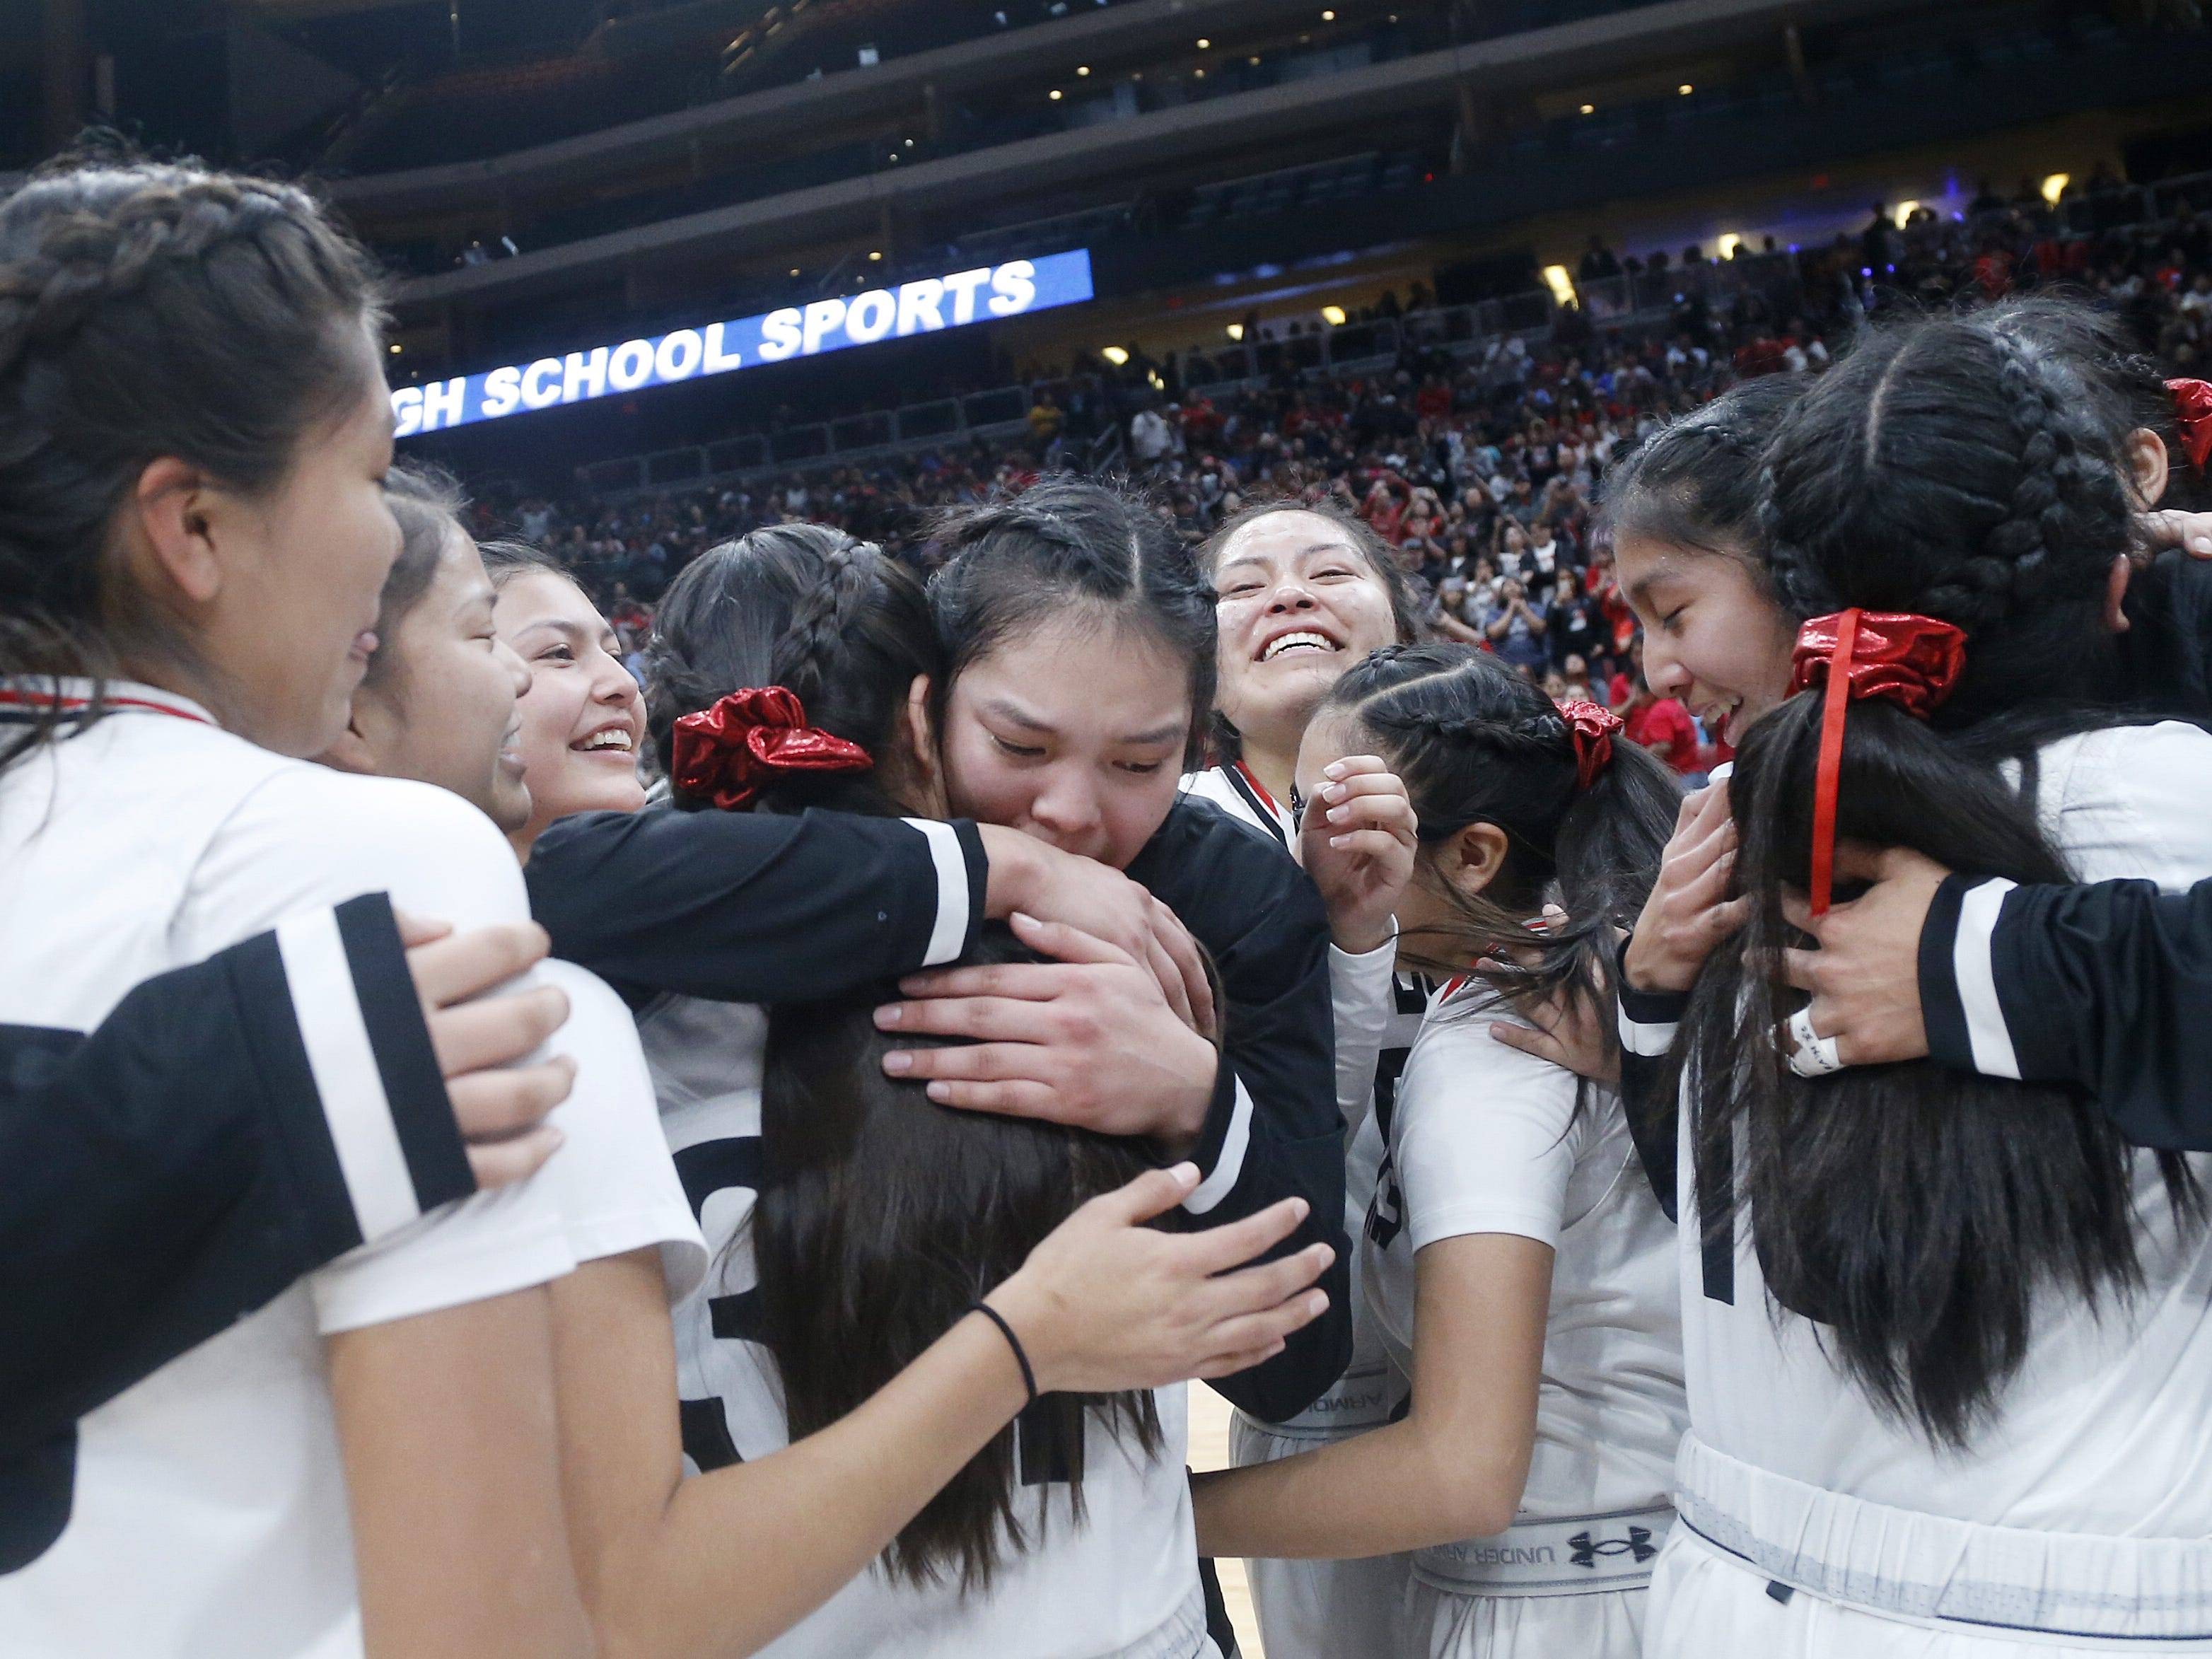 Page's Myka Taliman (20)(center) hugs her teammate Diana Secody (14) after winning the 3A girls basketball state championship game over Holbrook at Gila River Arena in Glendale, Ariz. on February 23, 2019.